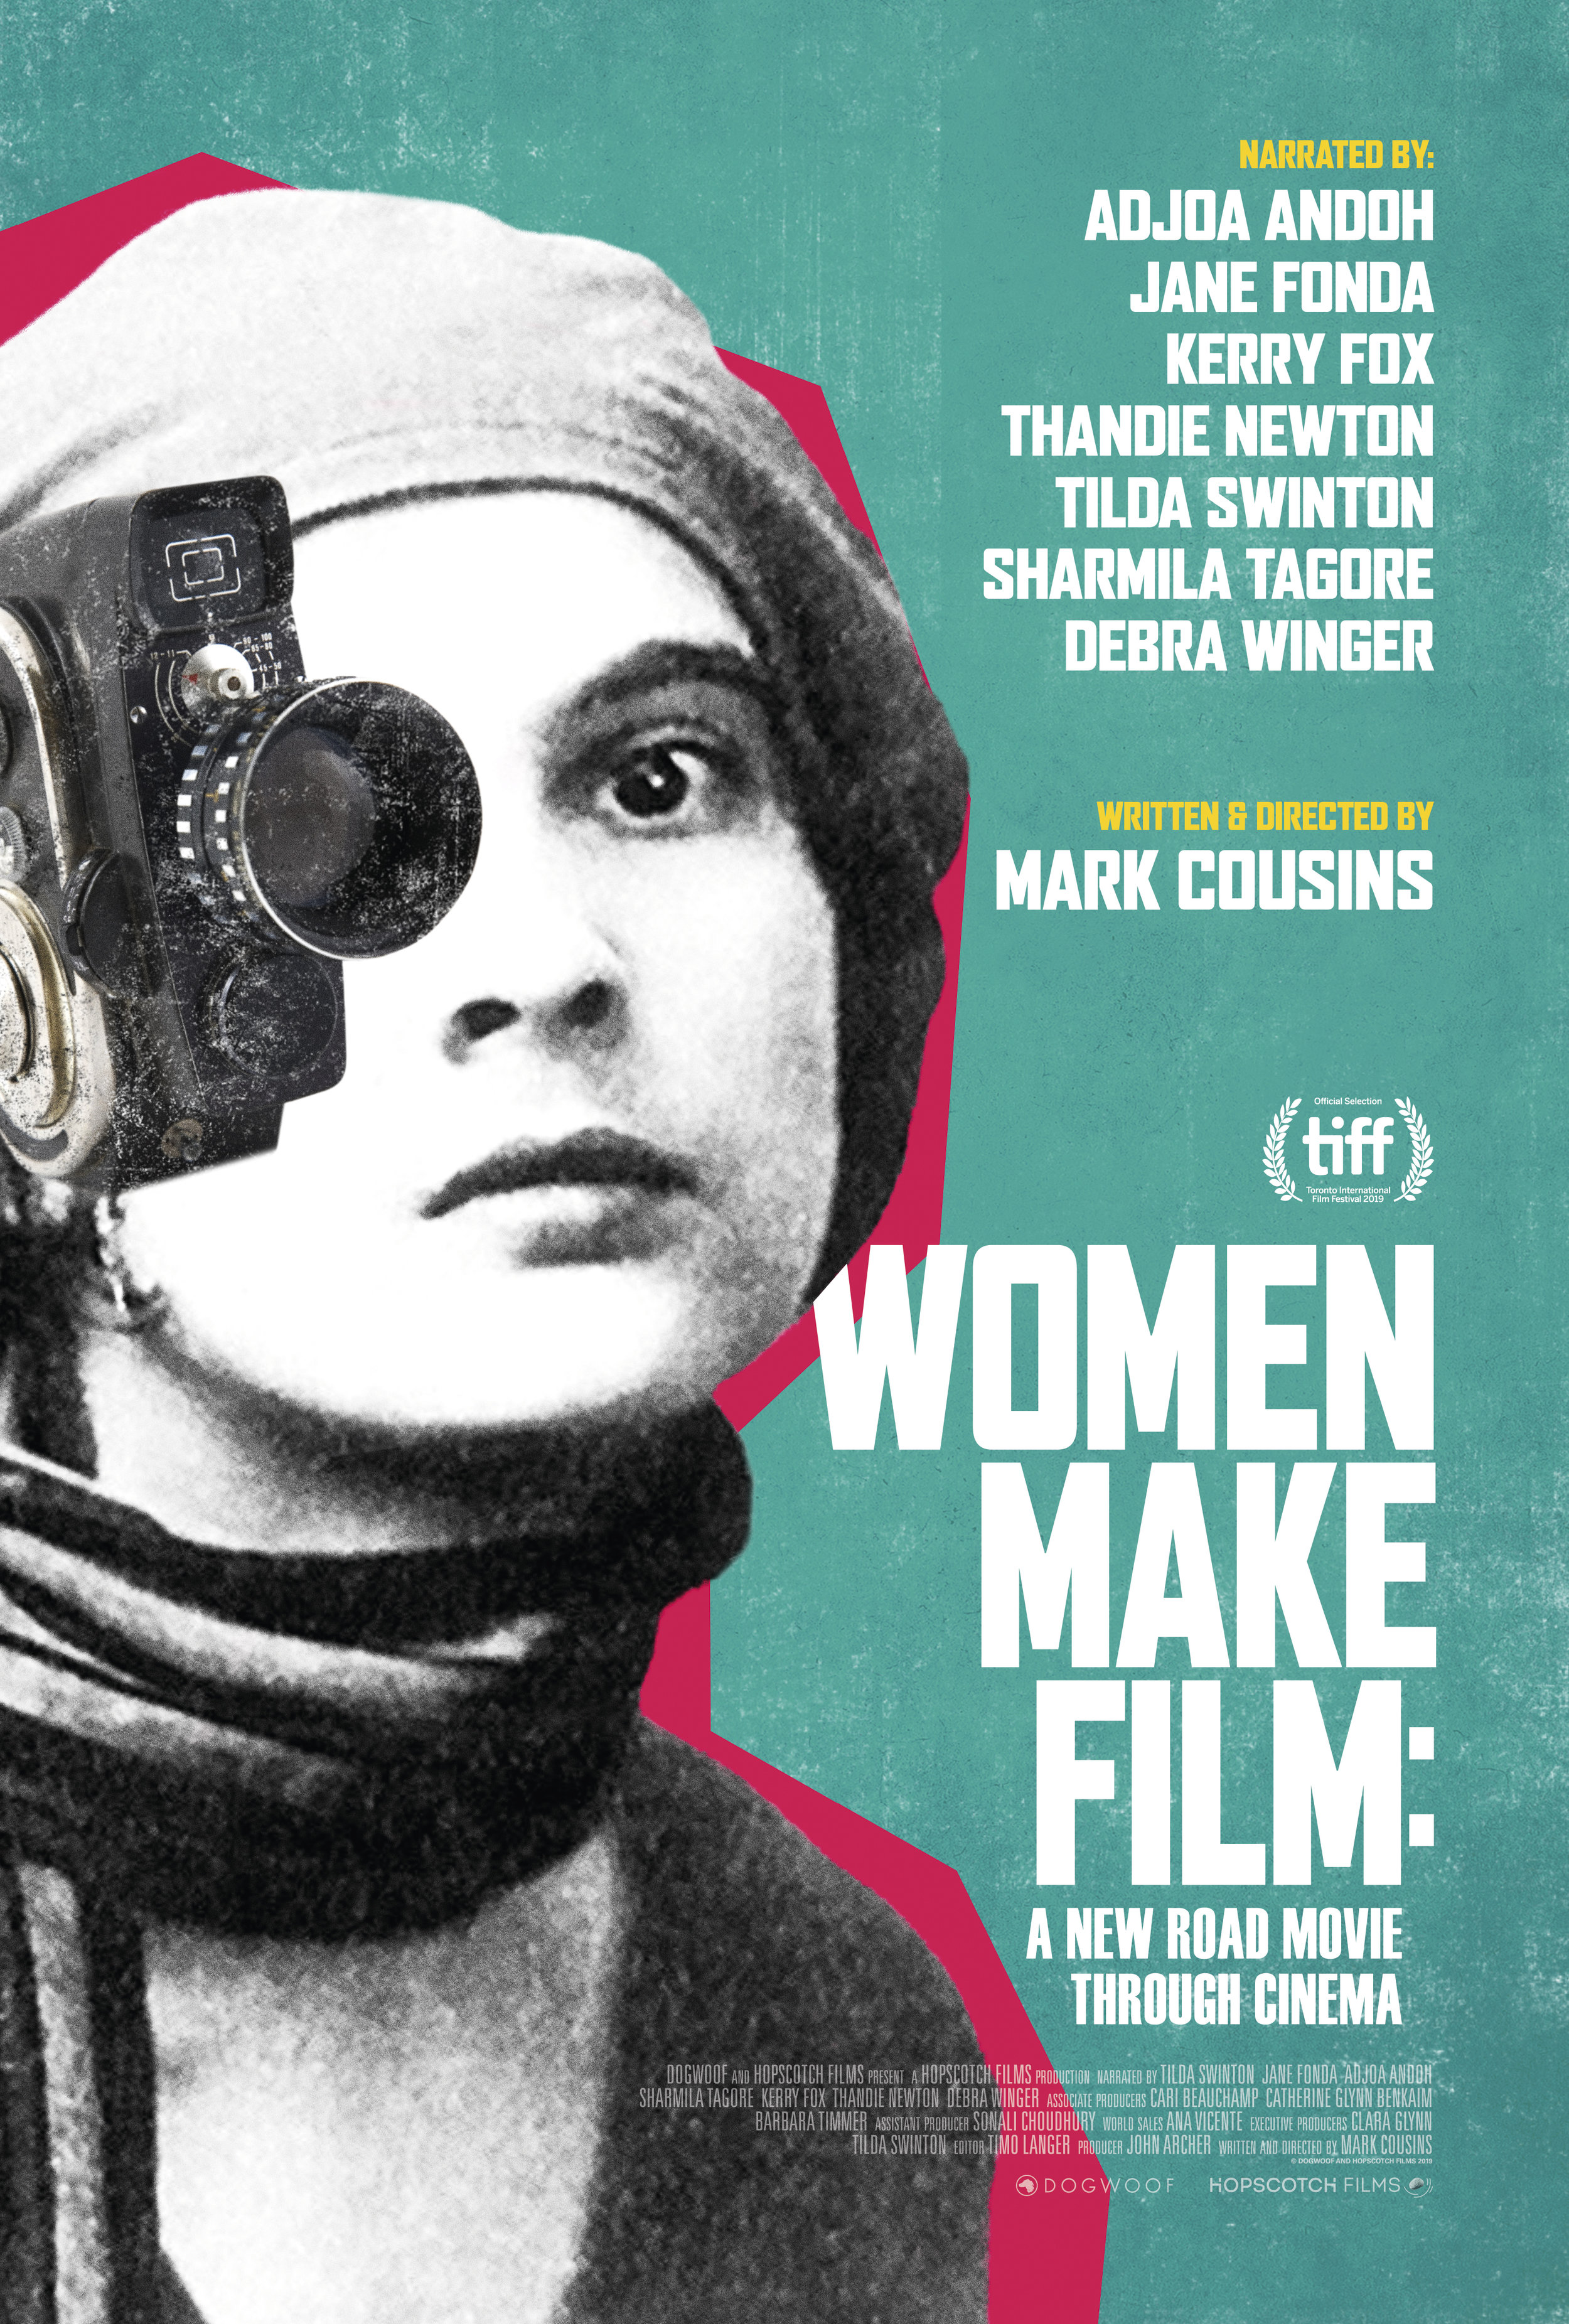 - Women Make Film draws on over 300 films to sketch its new road map through cinema. For the cinephiles out there, click below for an attachment of every film referenced. A perfect resource to find new cinematic treasures!